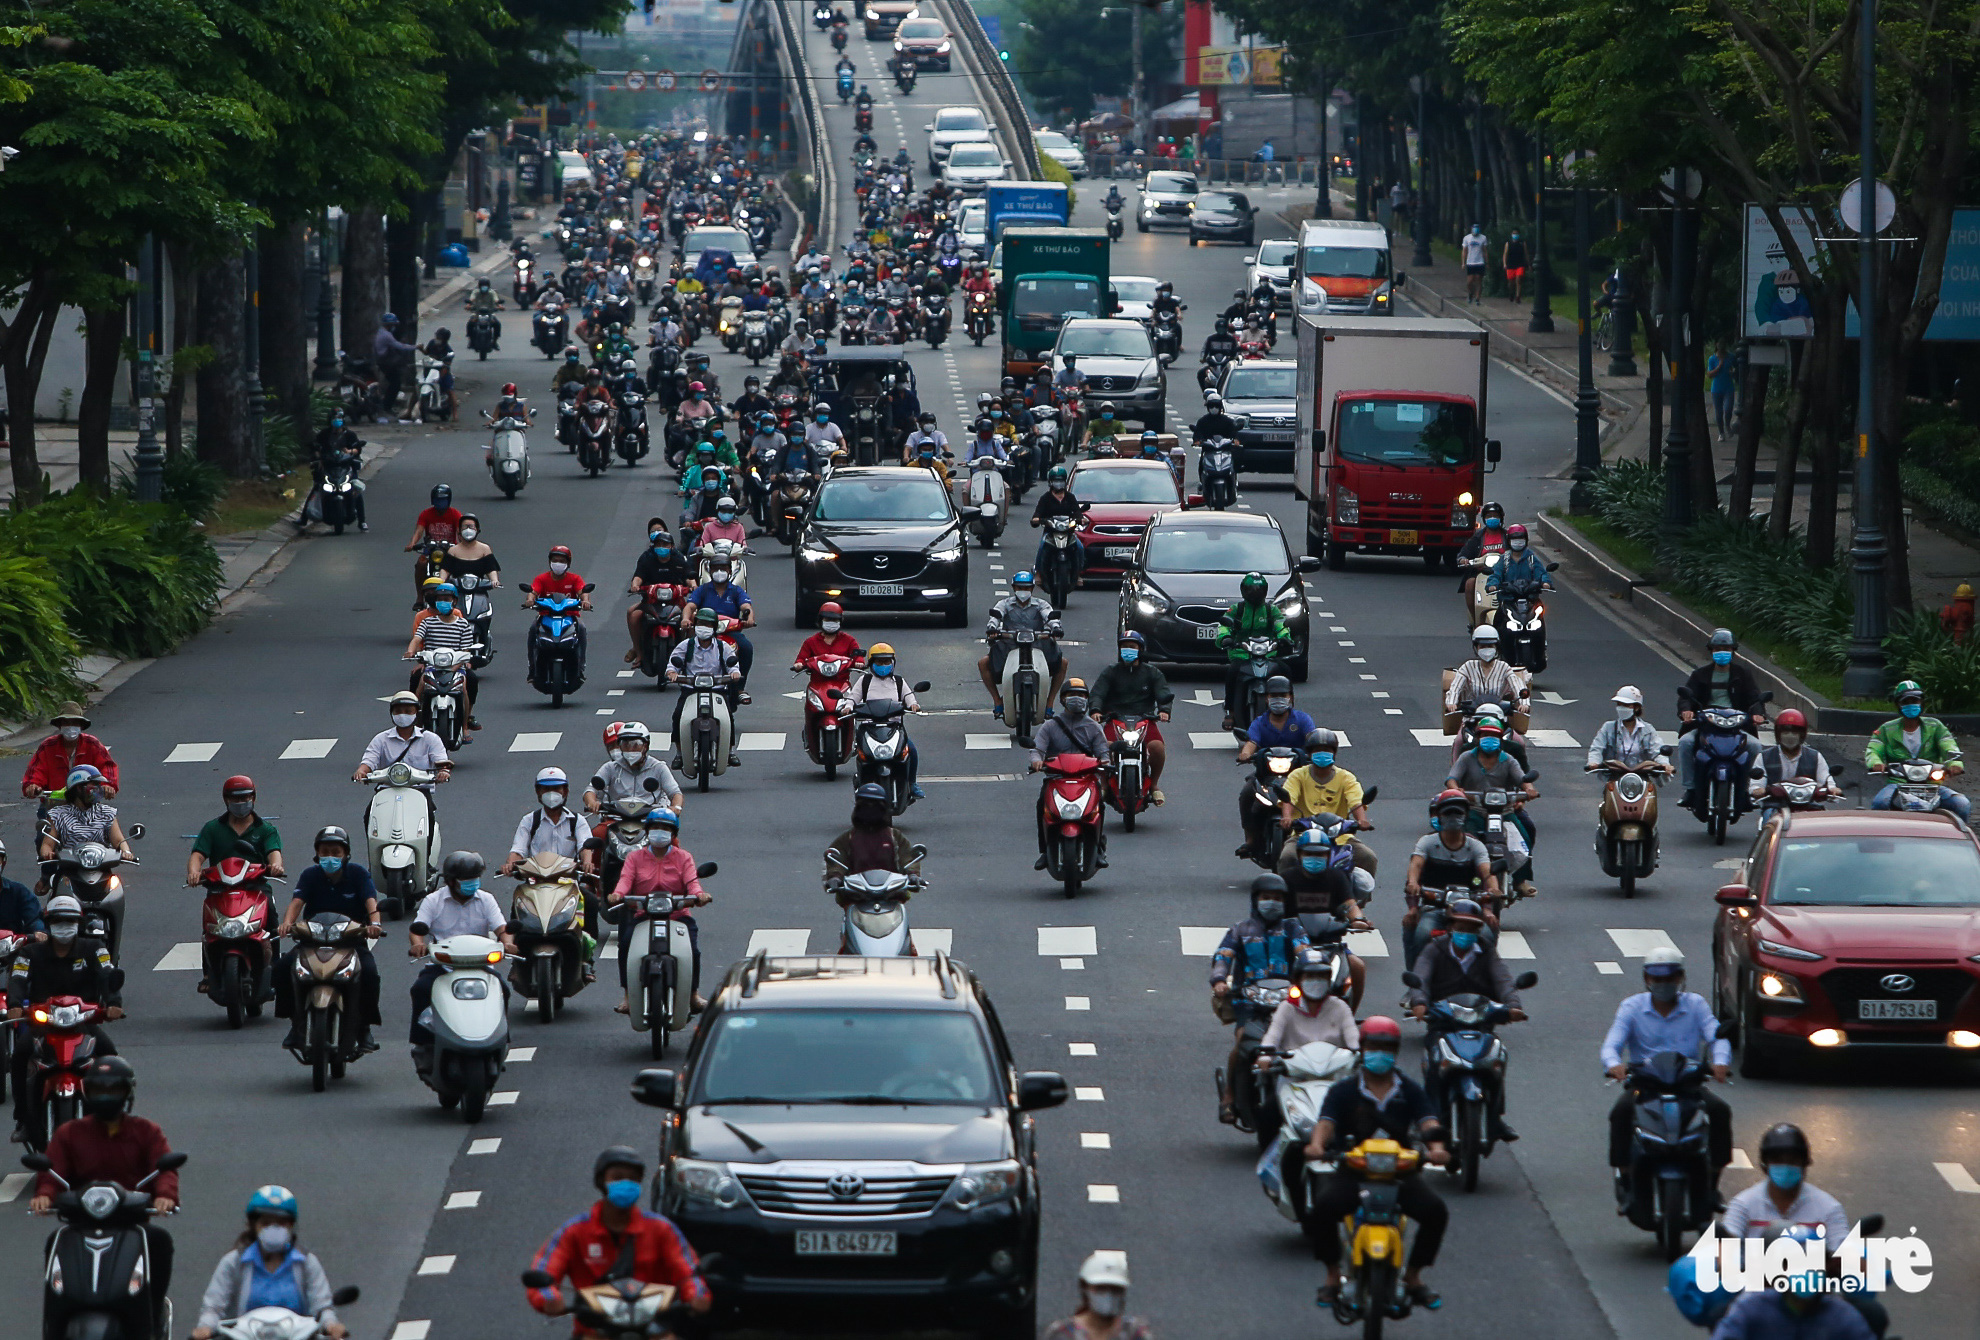 Busy traffic is seen on Hoang Van Thu Street in Tan Binh District, Ho Chi Minh City, October 4, 2021. Photo: Chau Tuan / Tuoi Tre